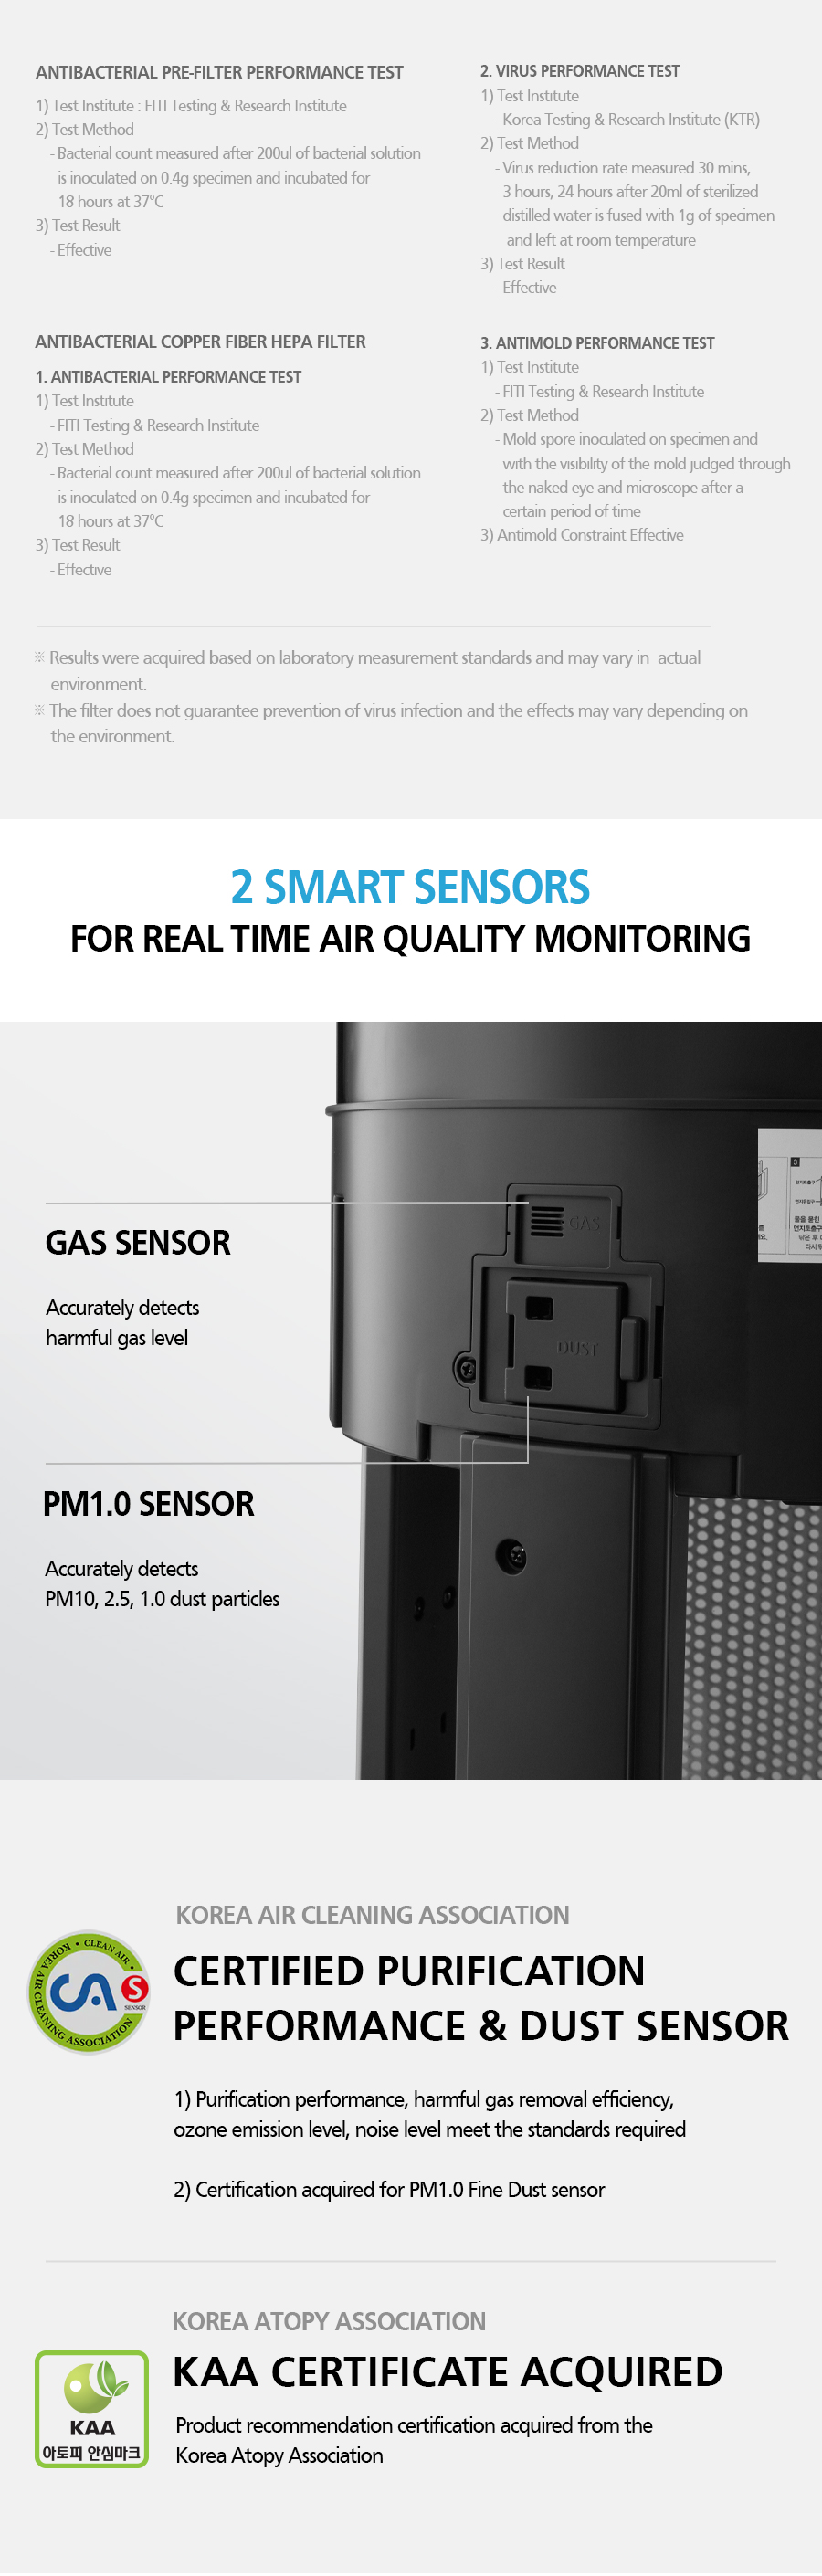 2 SMART SENSORS FOR REAL TIME AIR QUALITY MONITORING